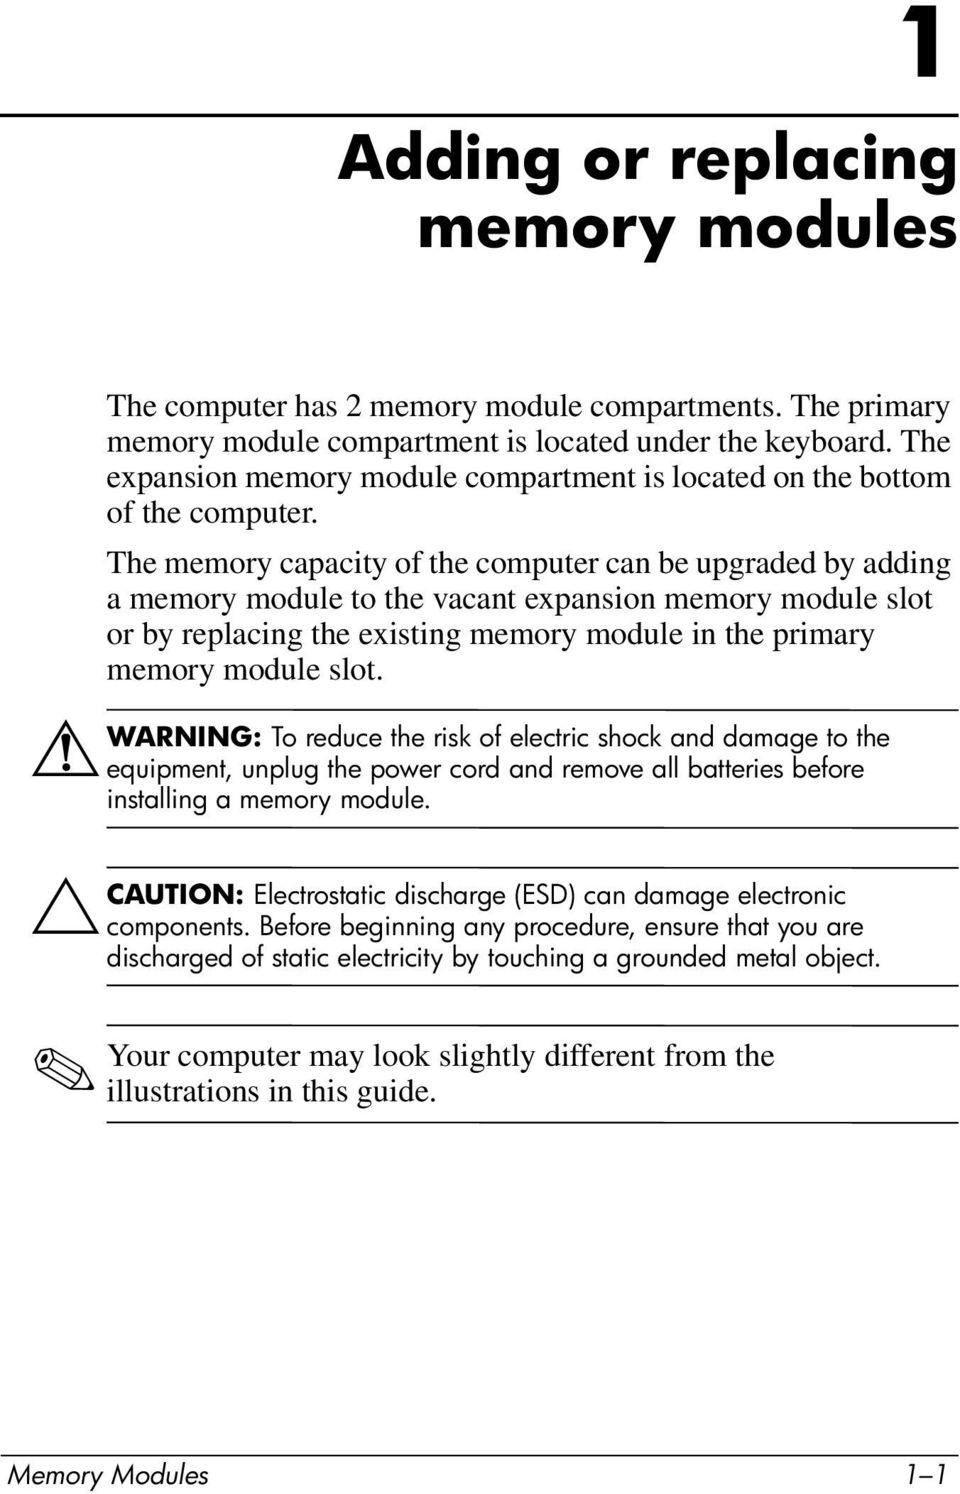 The memory capacity of the computer can be upgraded by adding a memory module to the vacant expansion memory module slot or by replacing the existing memory module in the primary memory module slot.